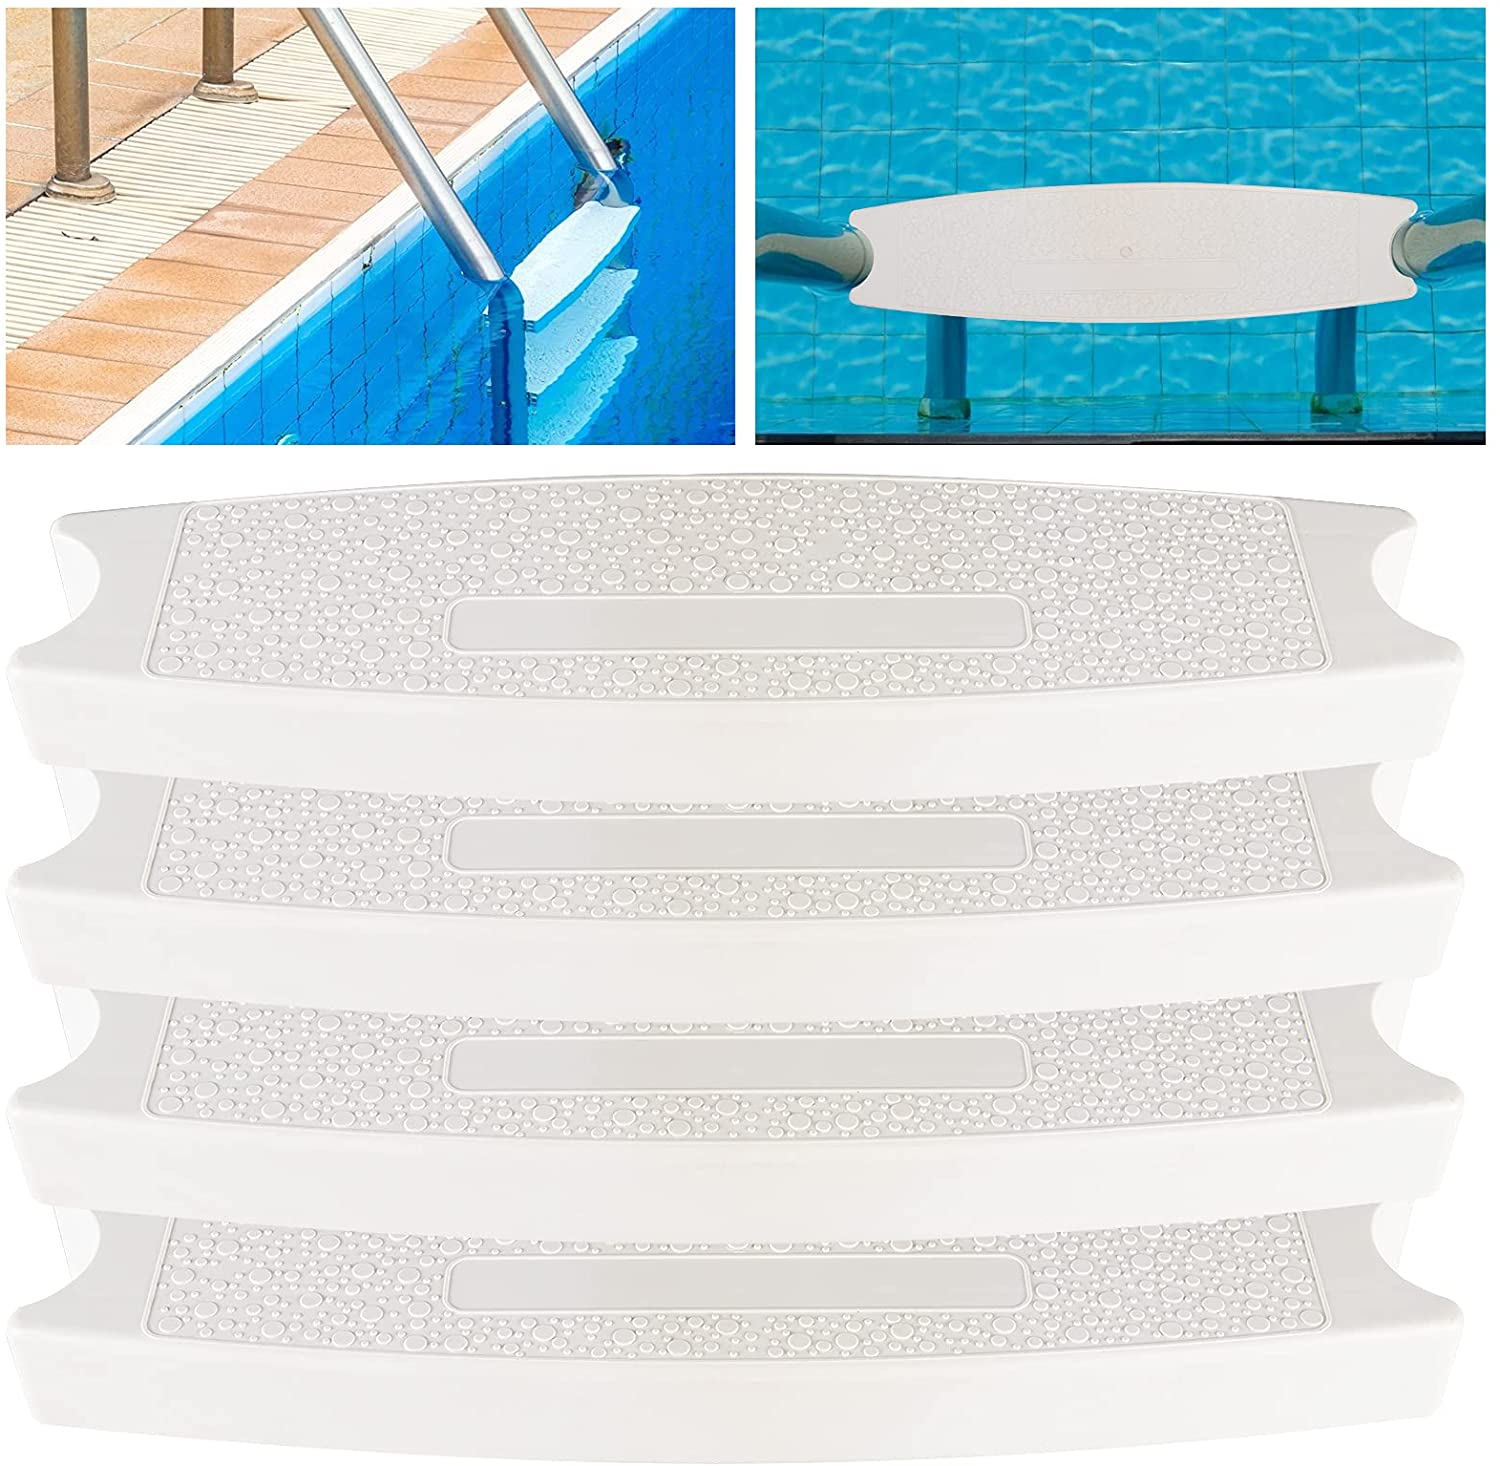 4 Pcs Replacement Pool Ladder Steps